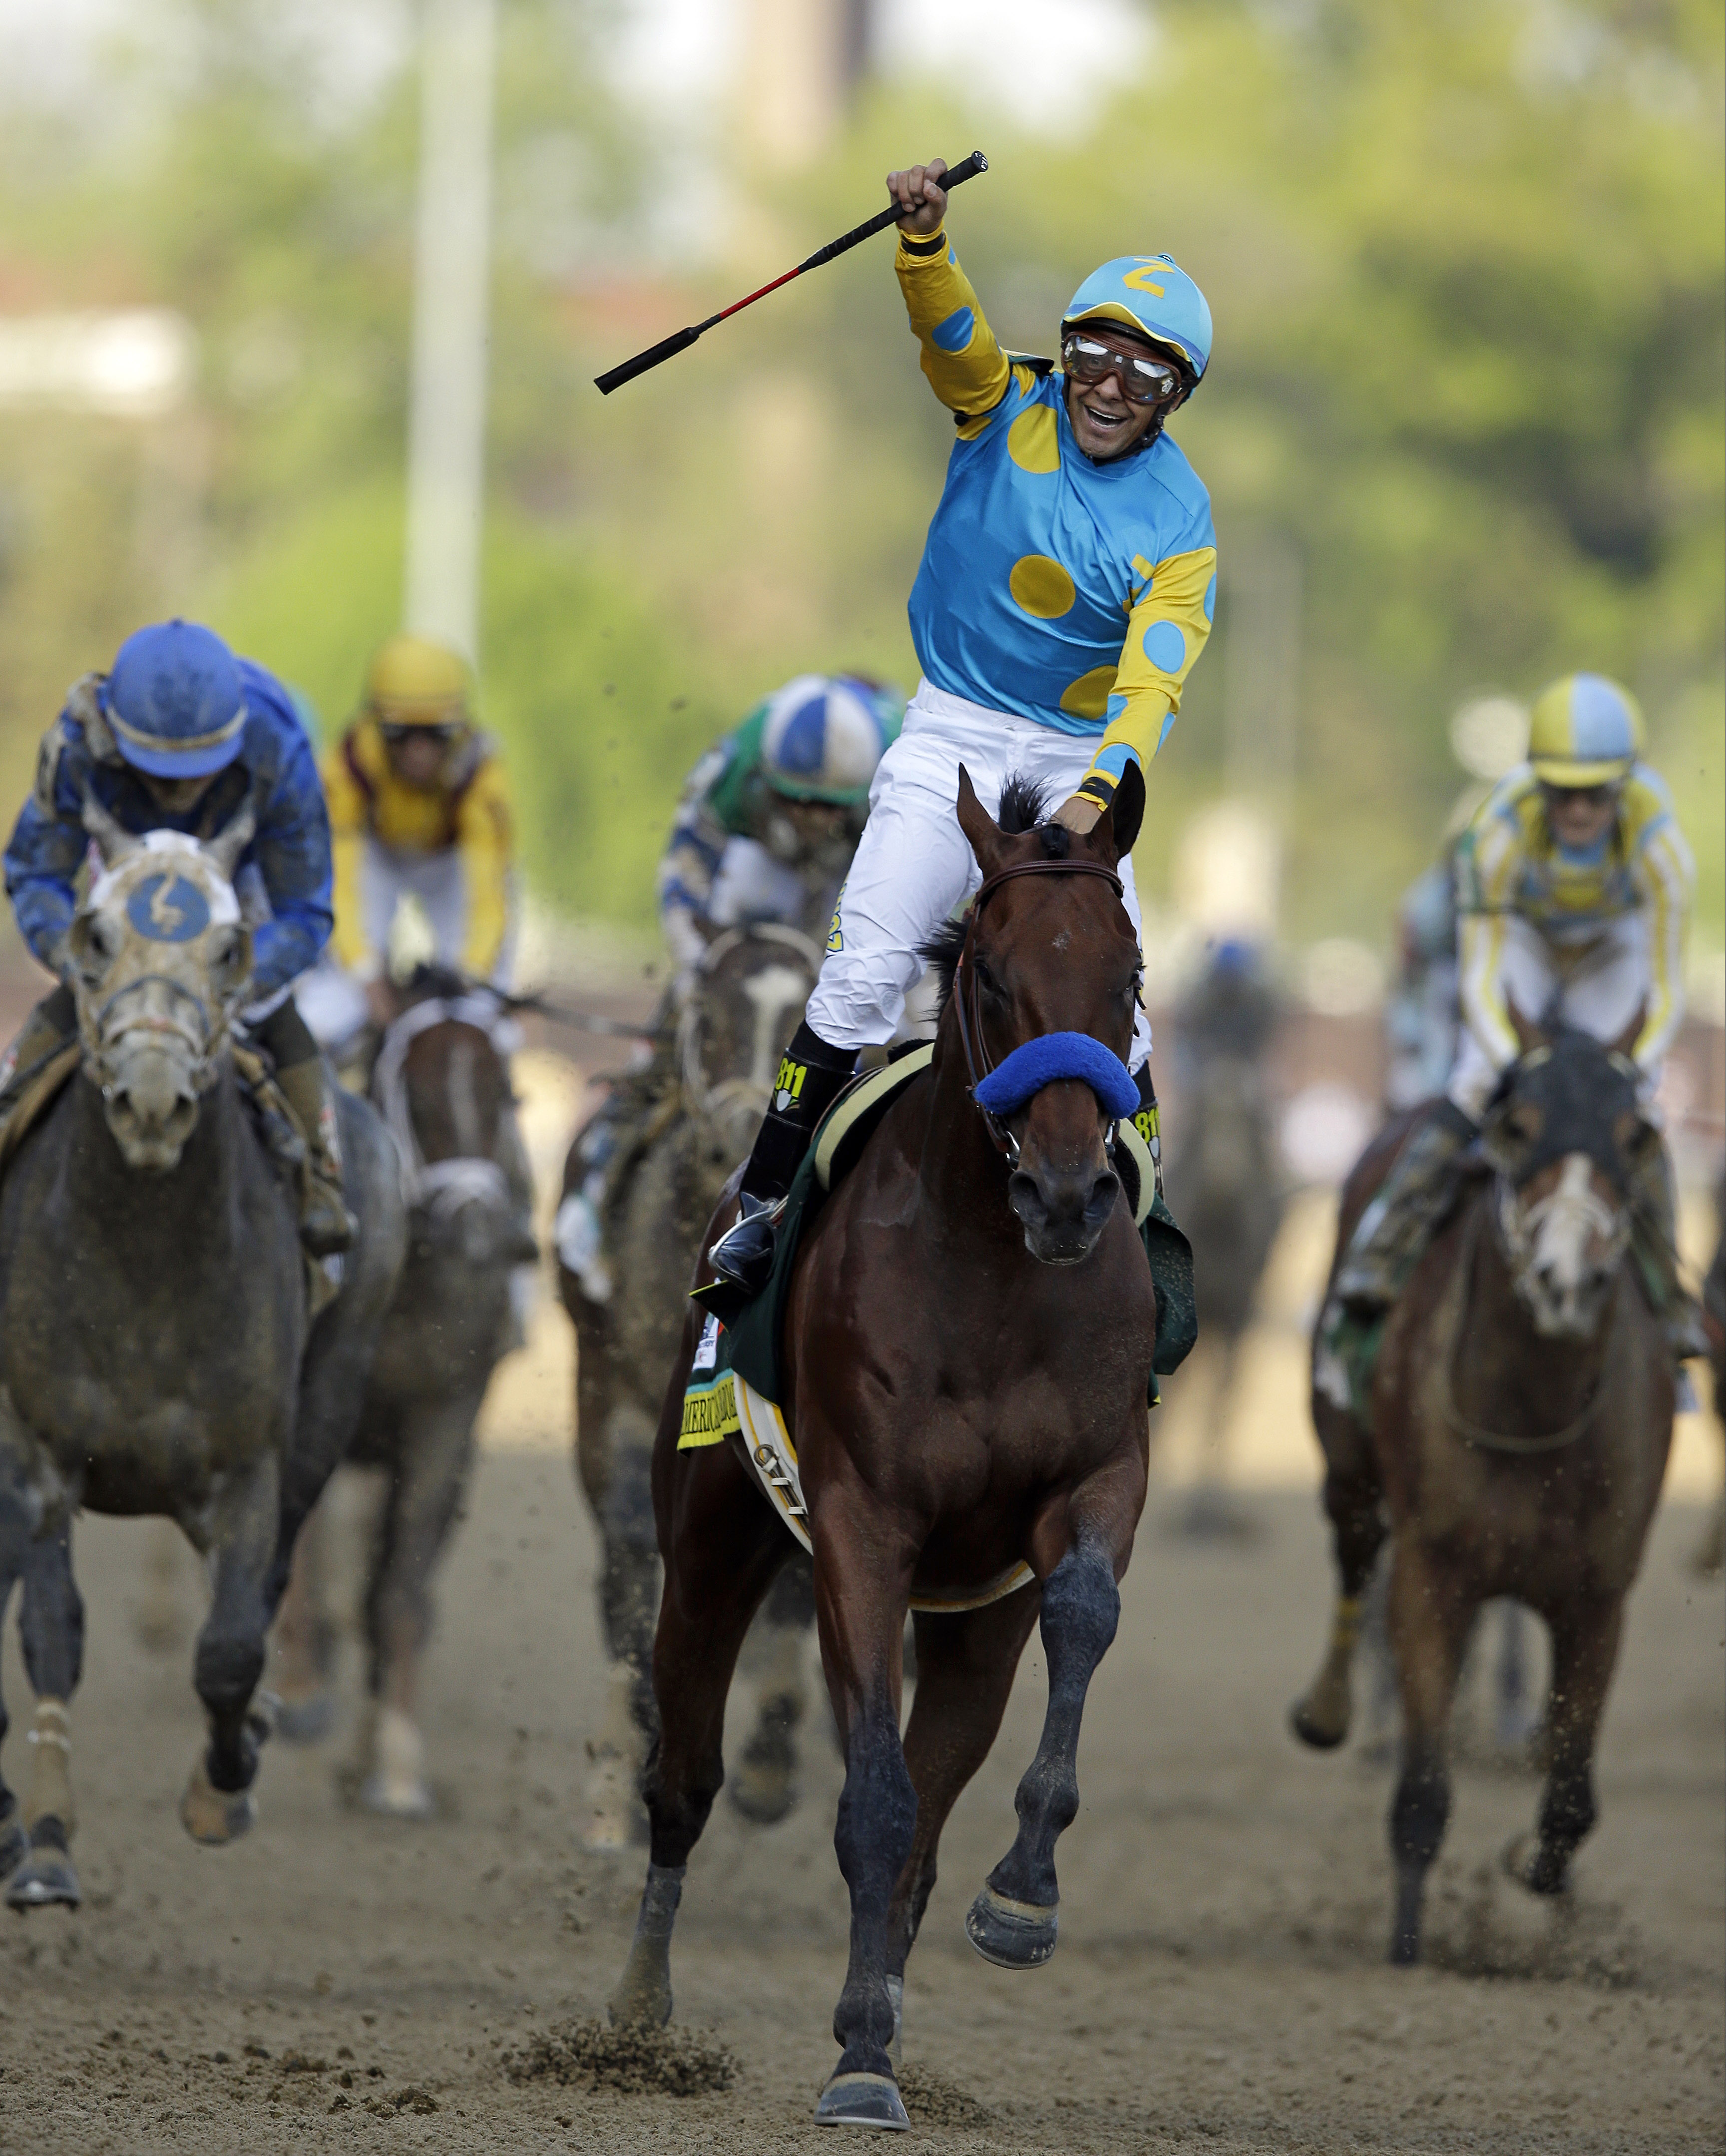 FILE - In this May 2, 2015 file photo, Victor Espinoza rides American Pharoah to victory in the 141st running of the Kentucky Derby horse race at Churchill Downs, in Louisville, Ky. Victor Espinoza will have a chance for an unprecedented three-peat in the